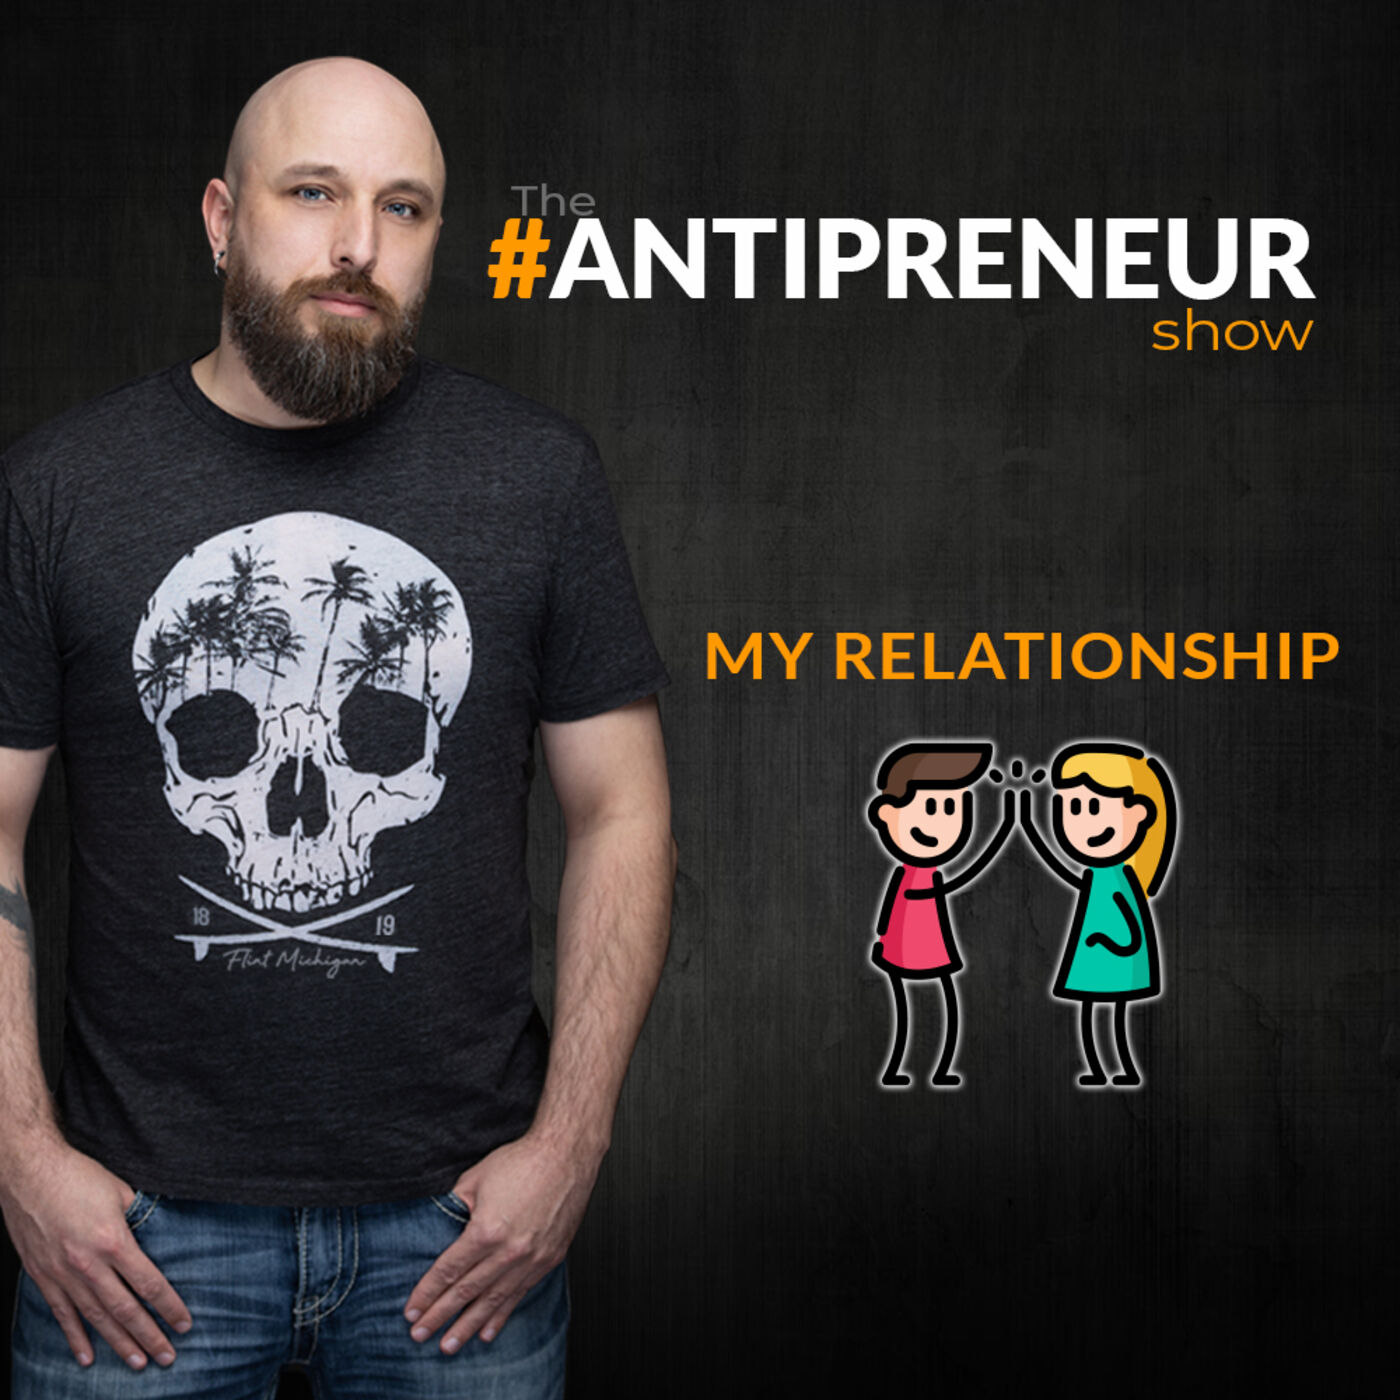 #40 - MY RELATIONSHIP - The #Antipreneur Show